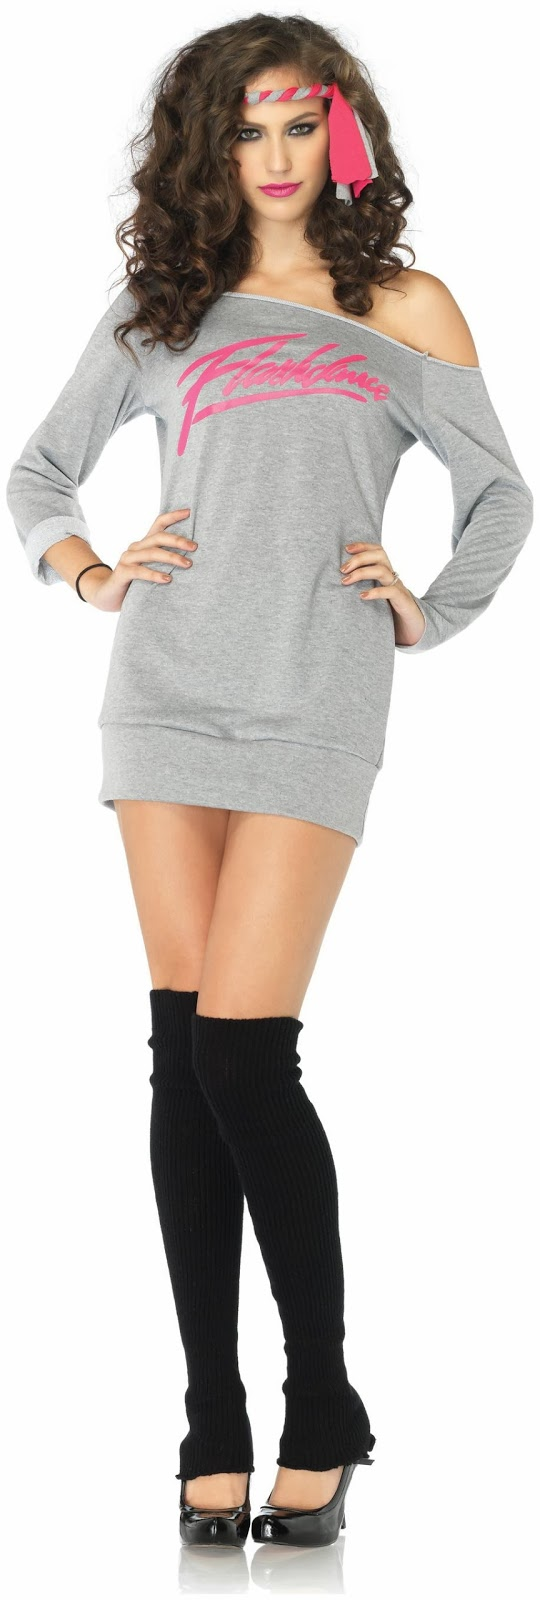 Best Halloween Costume Deals: New Years Eve Sexy Costumes ...